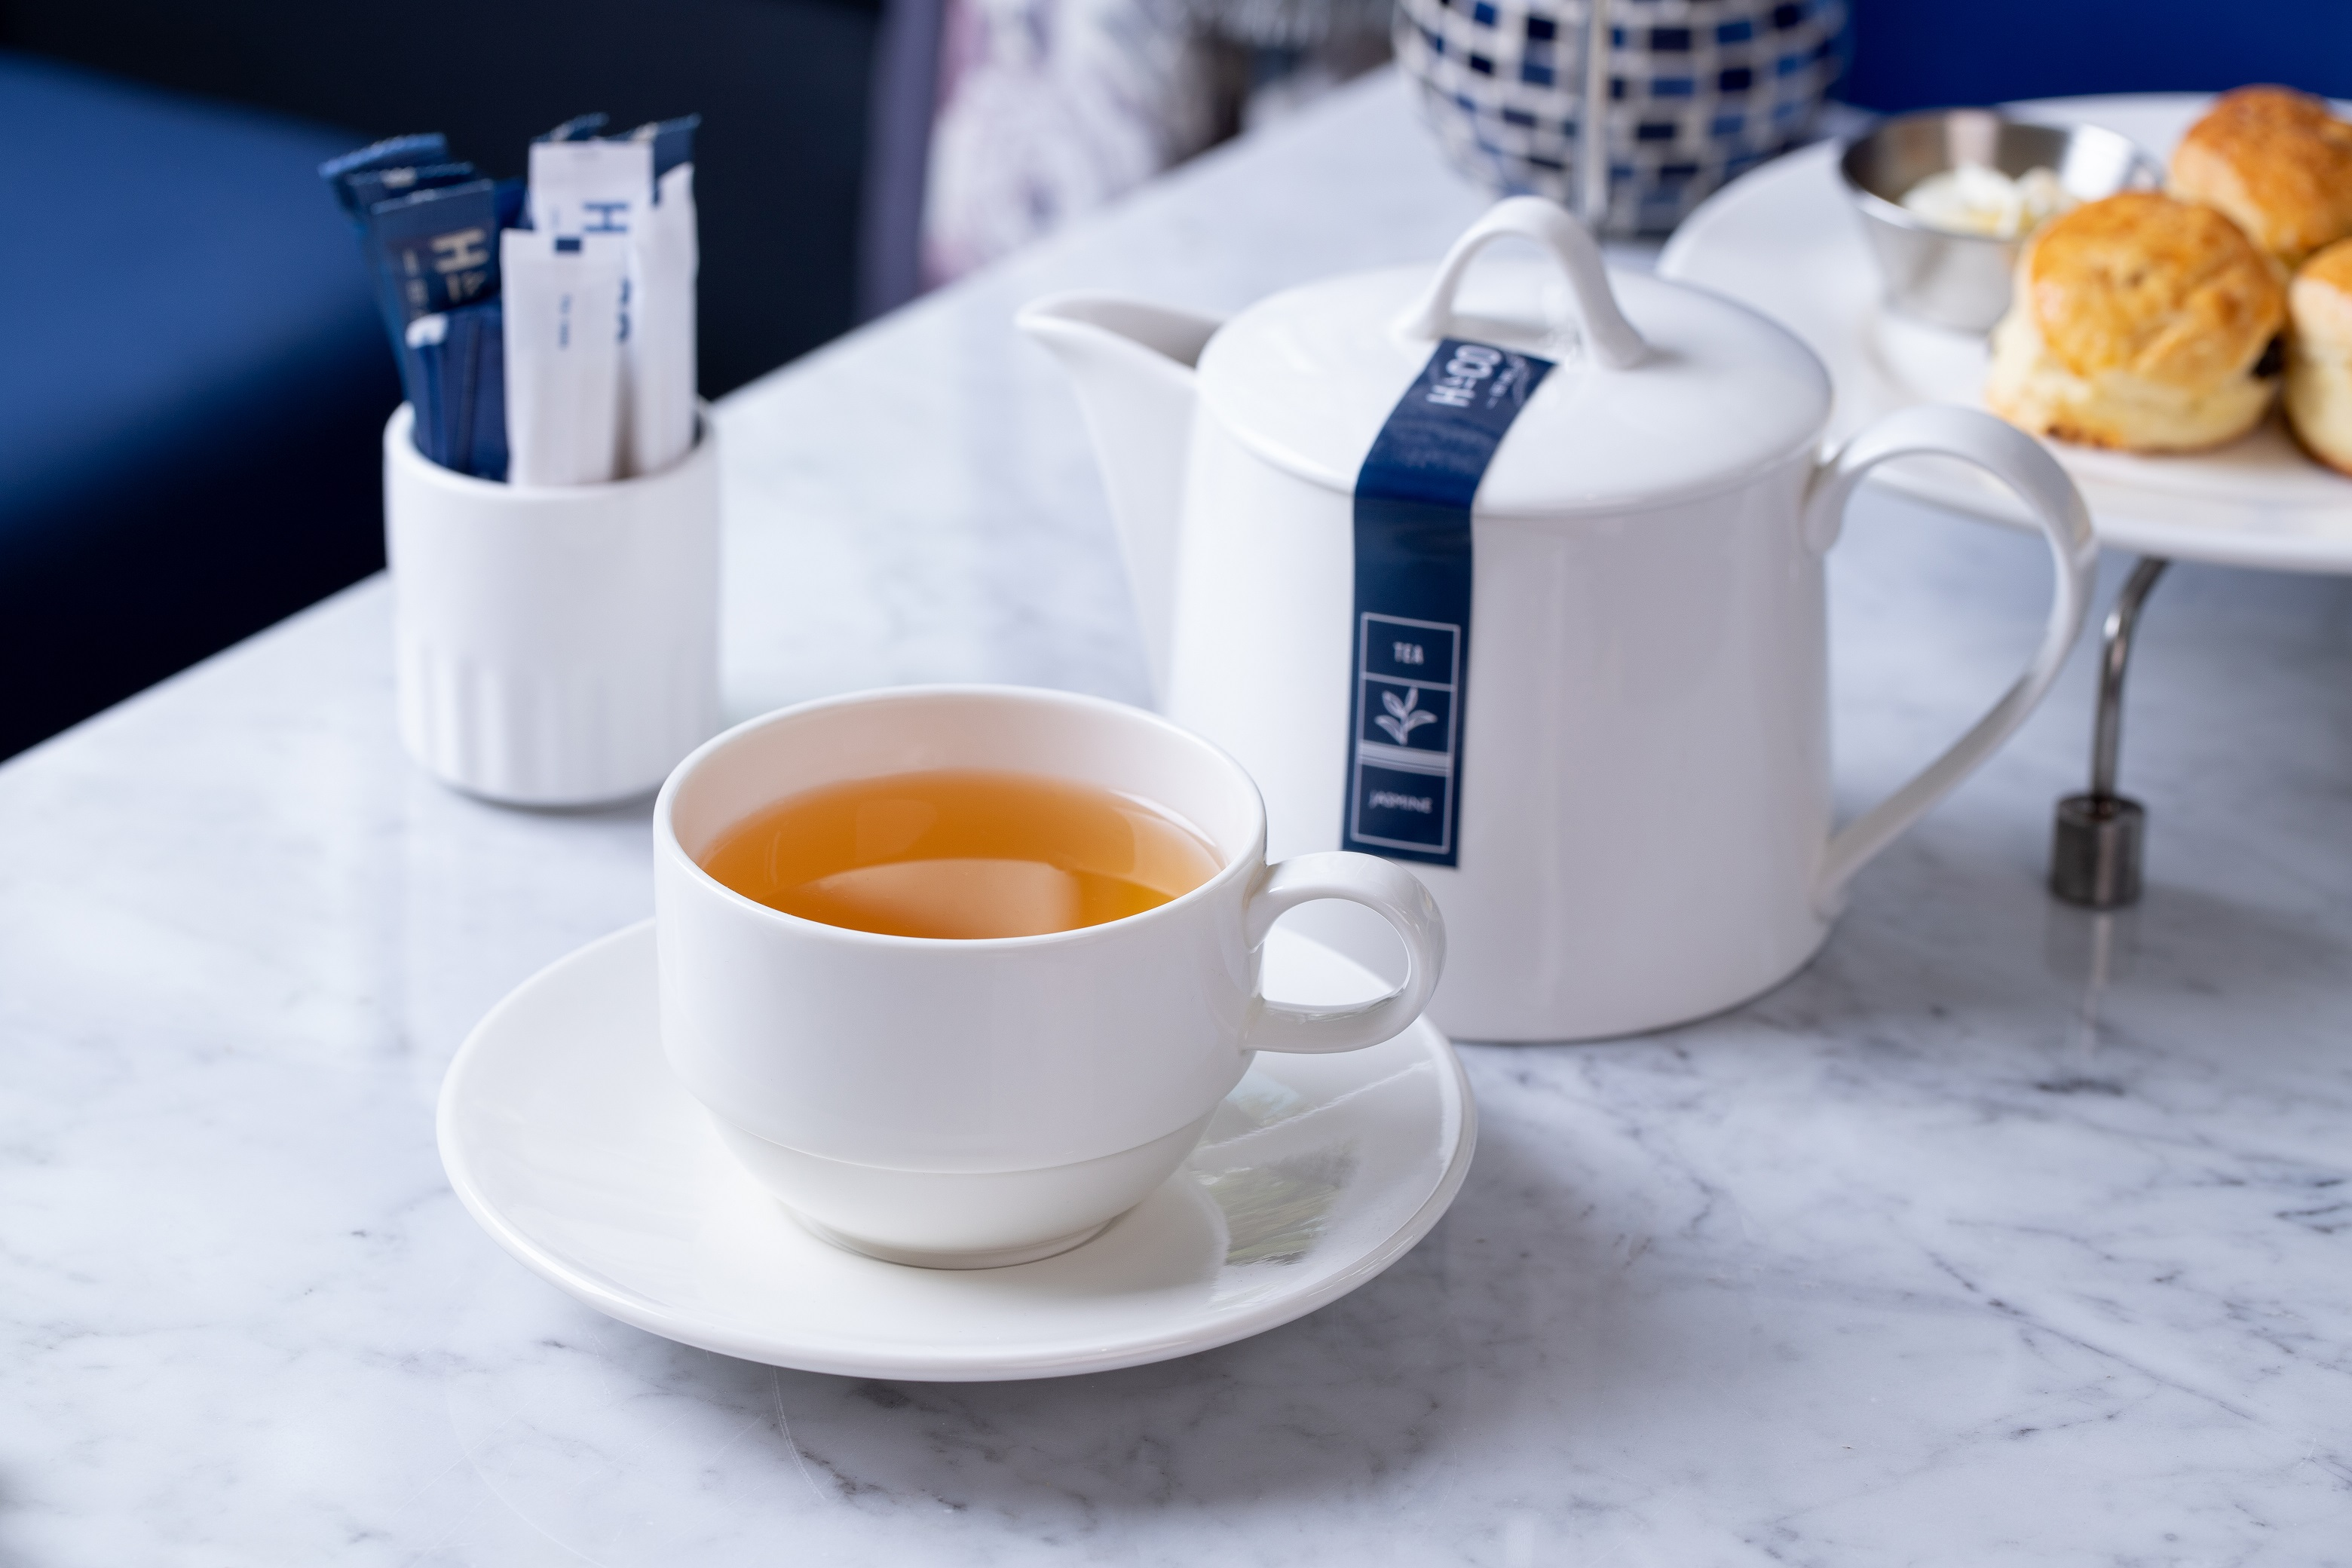 5 Simple Tips To Upgrade Your Tea Experience